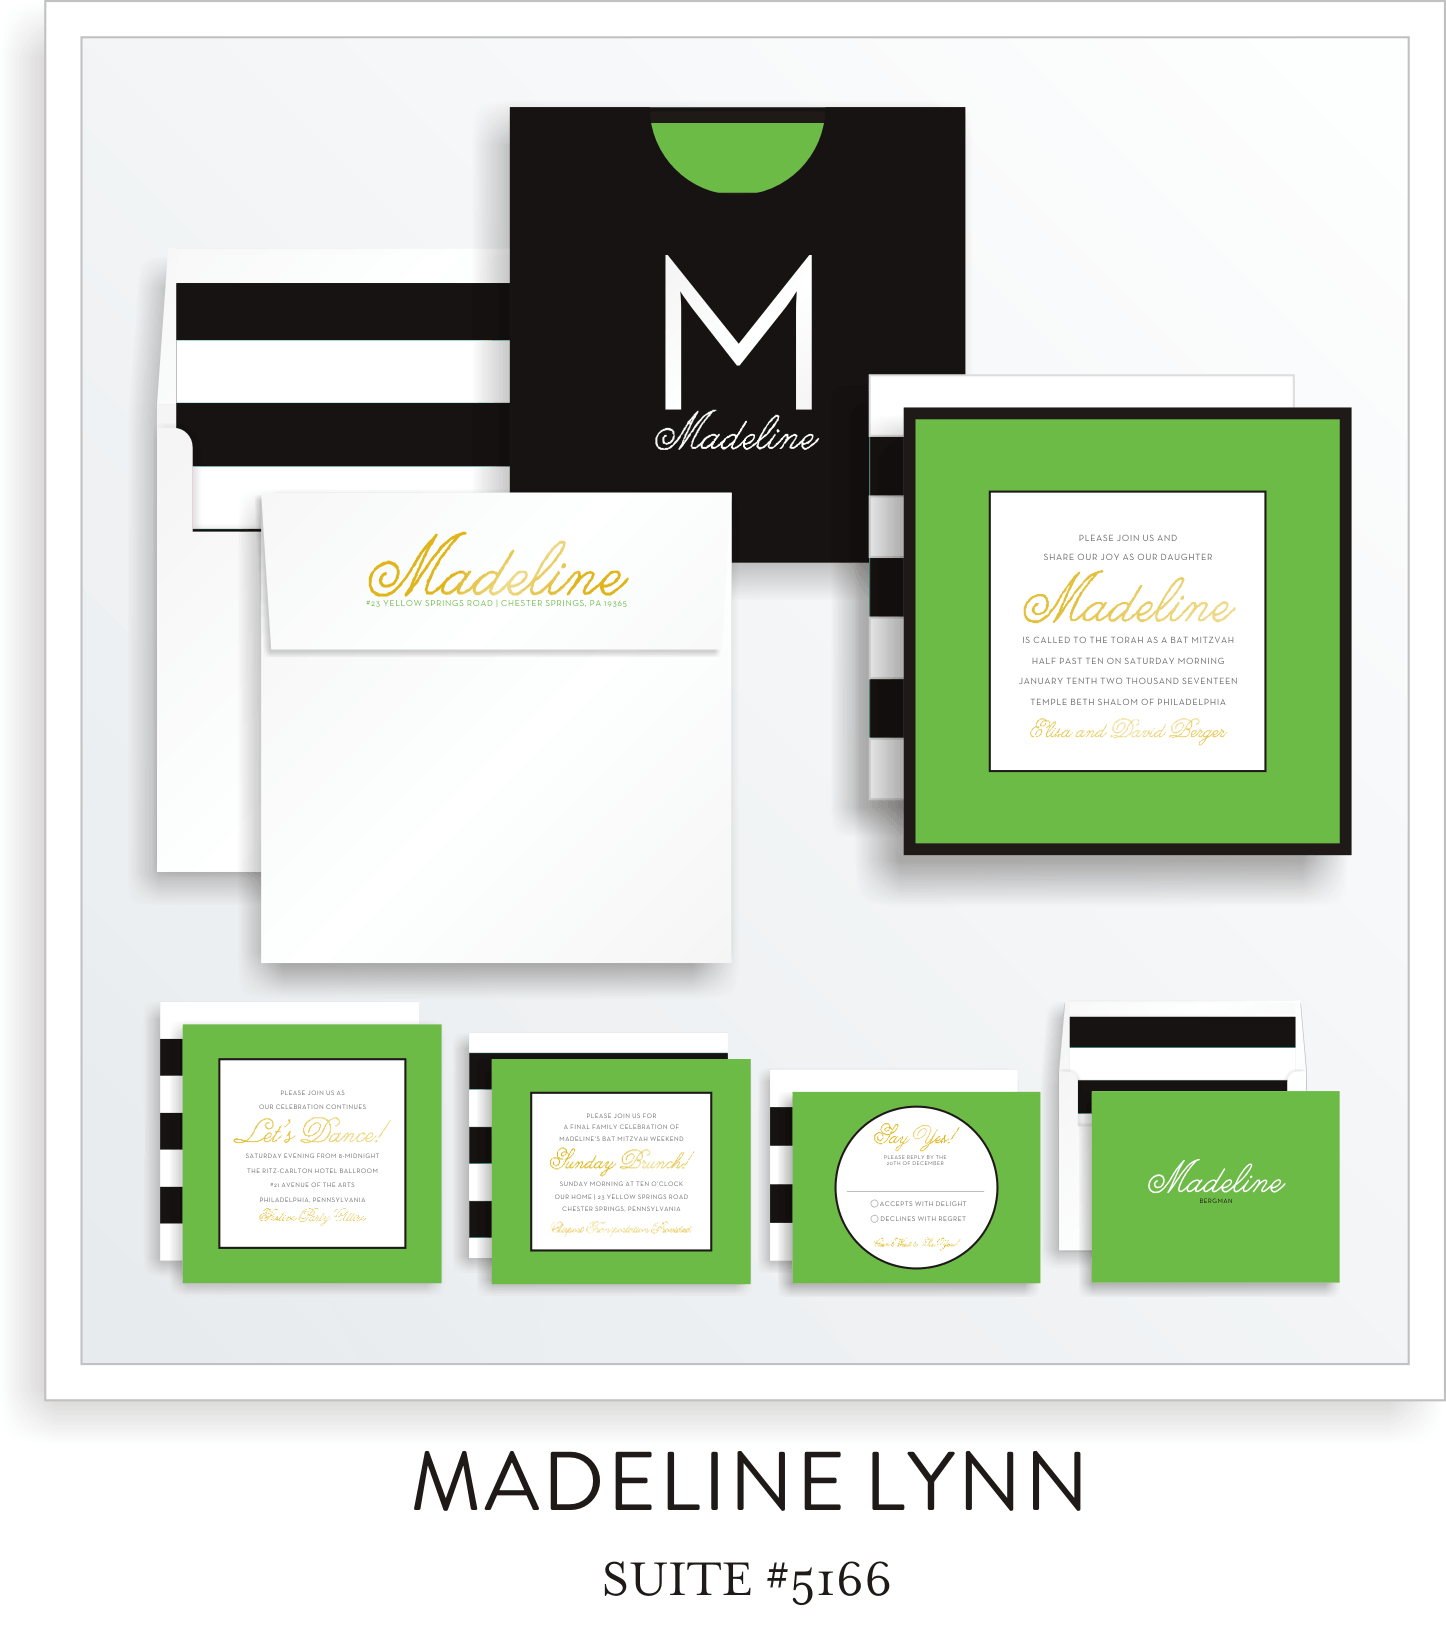 Bat Mitzvah Invitation Suite 5166 - Madeline Lynn